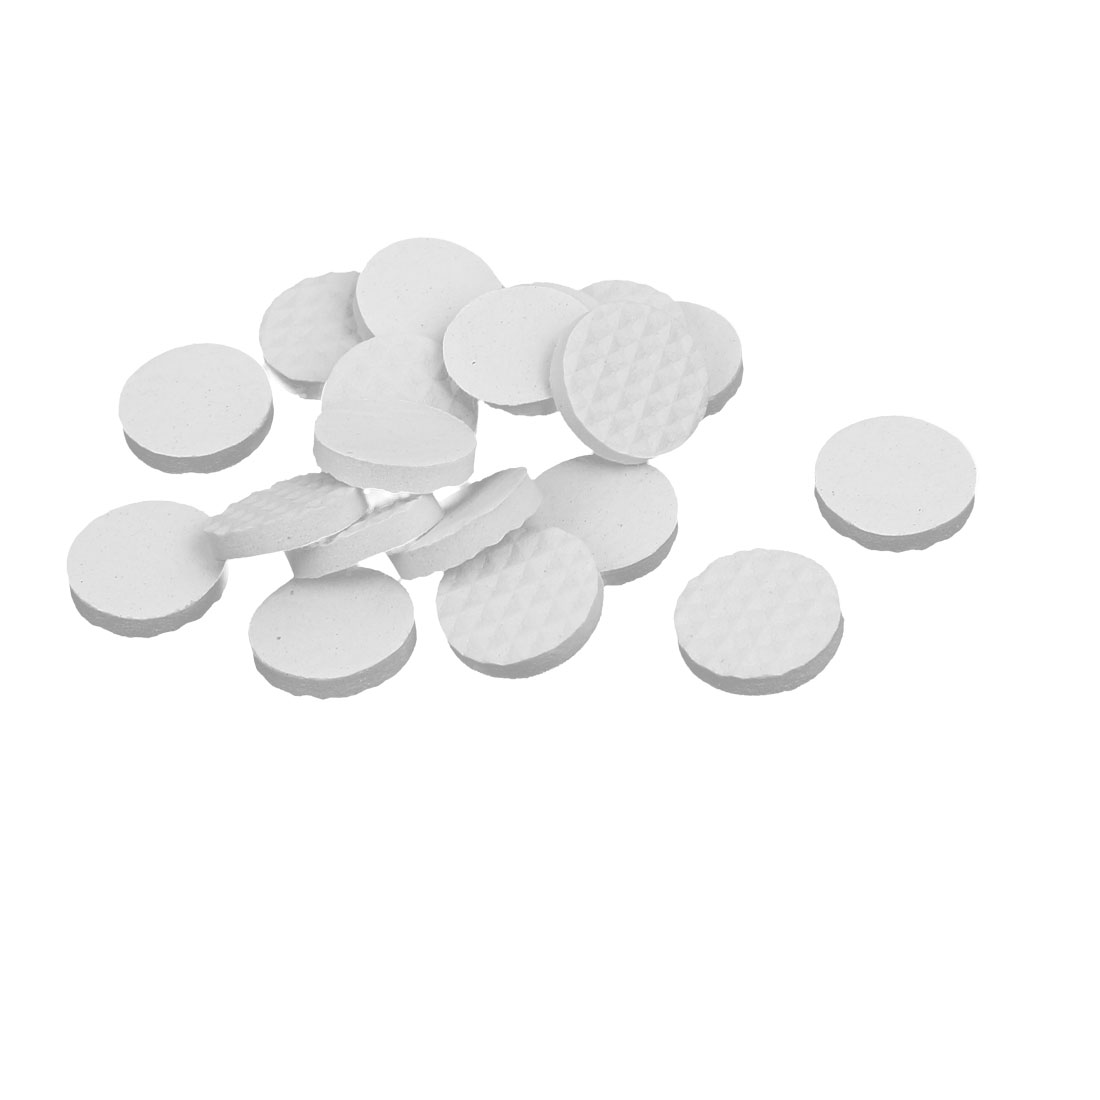 18mm Dia Rubber Self Adhesive Anti-Skid Furniture Protection Pads White 18pcs